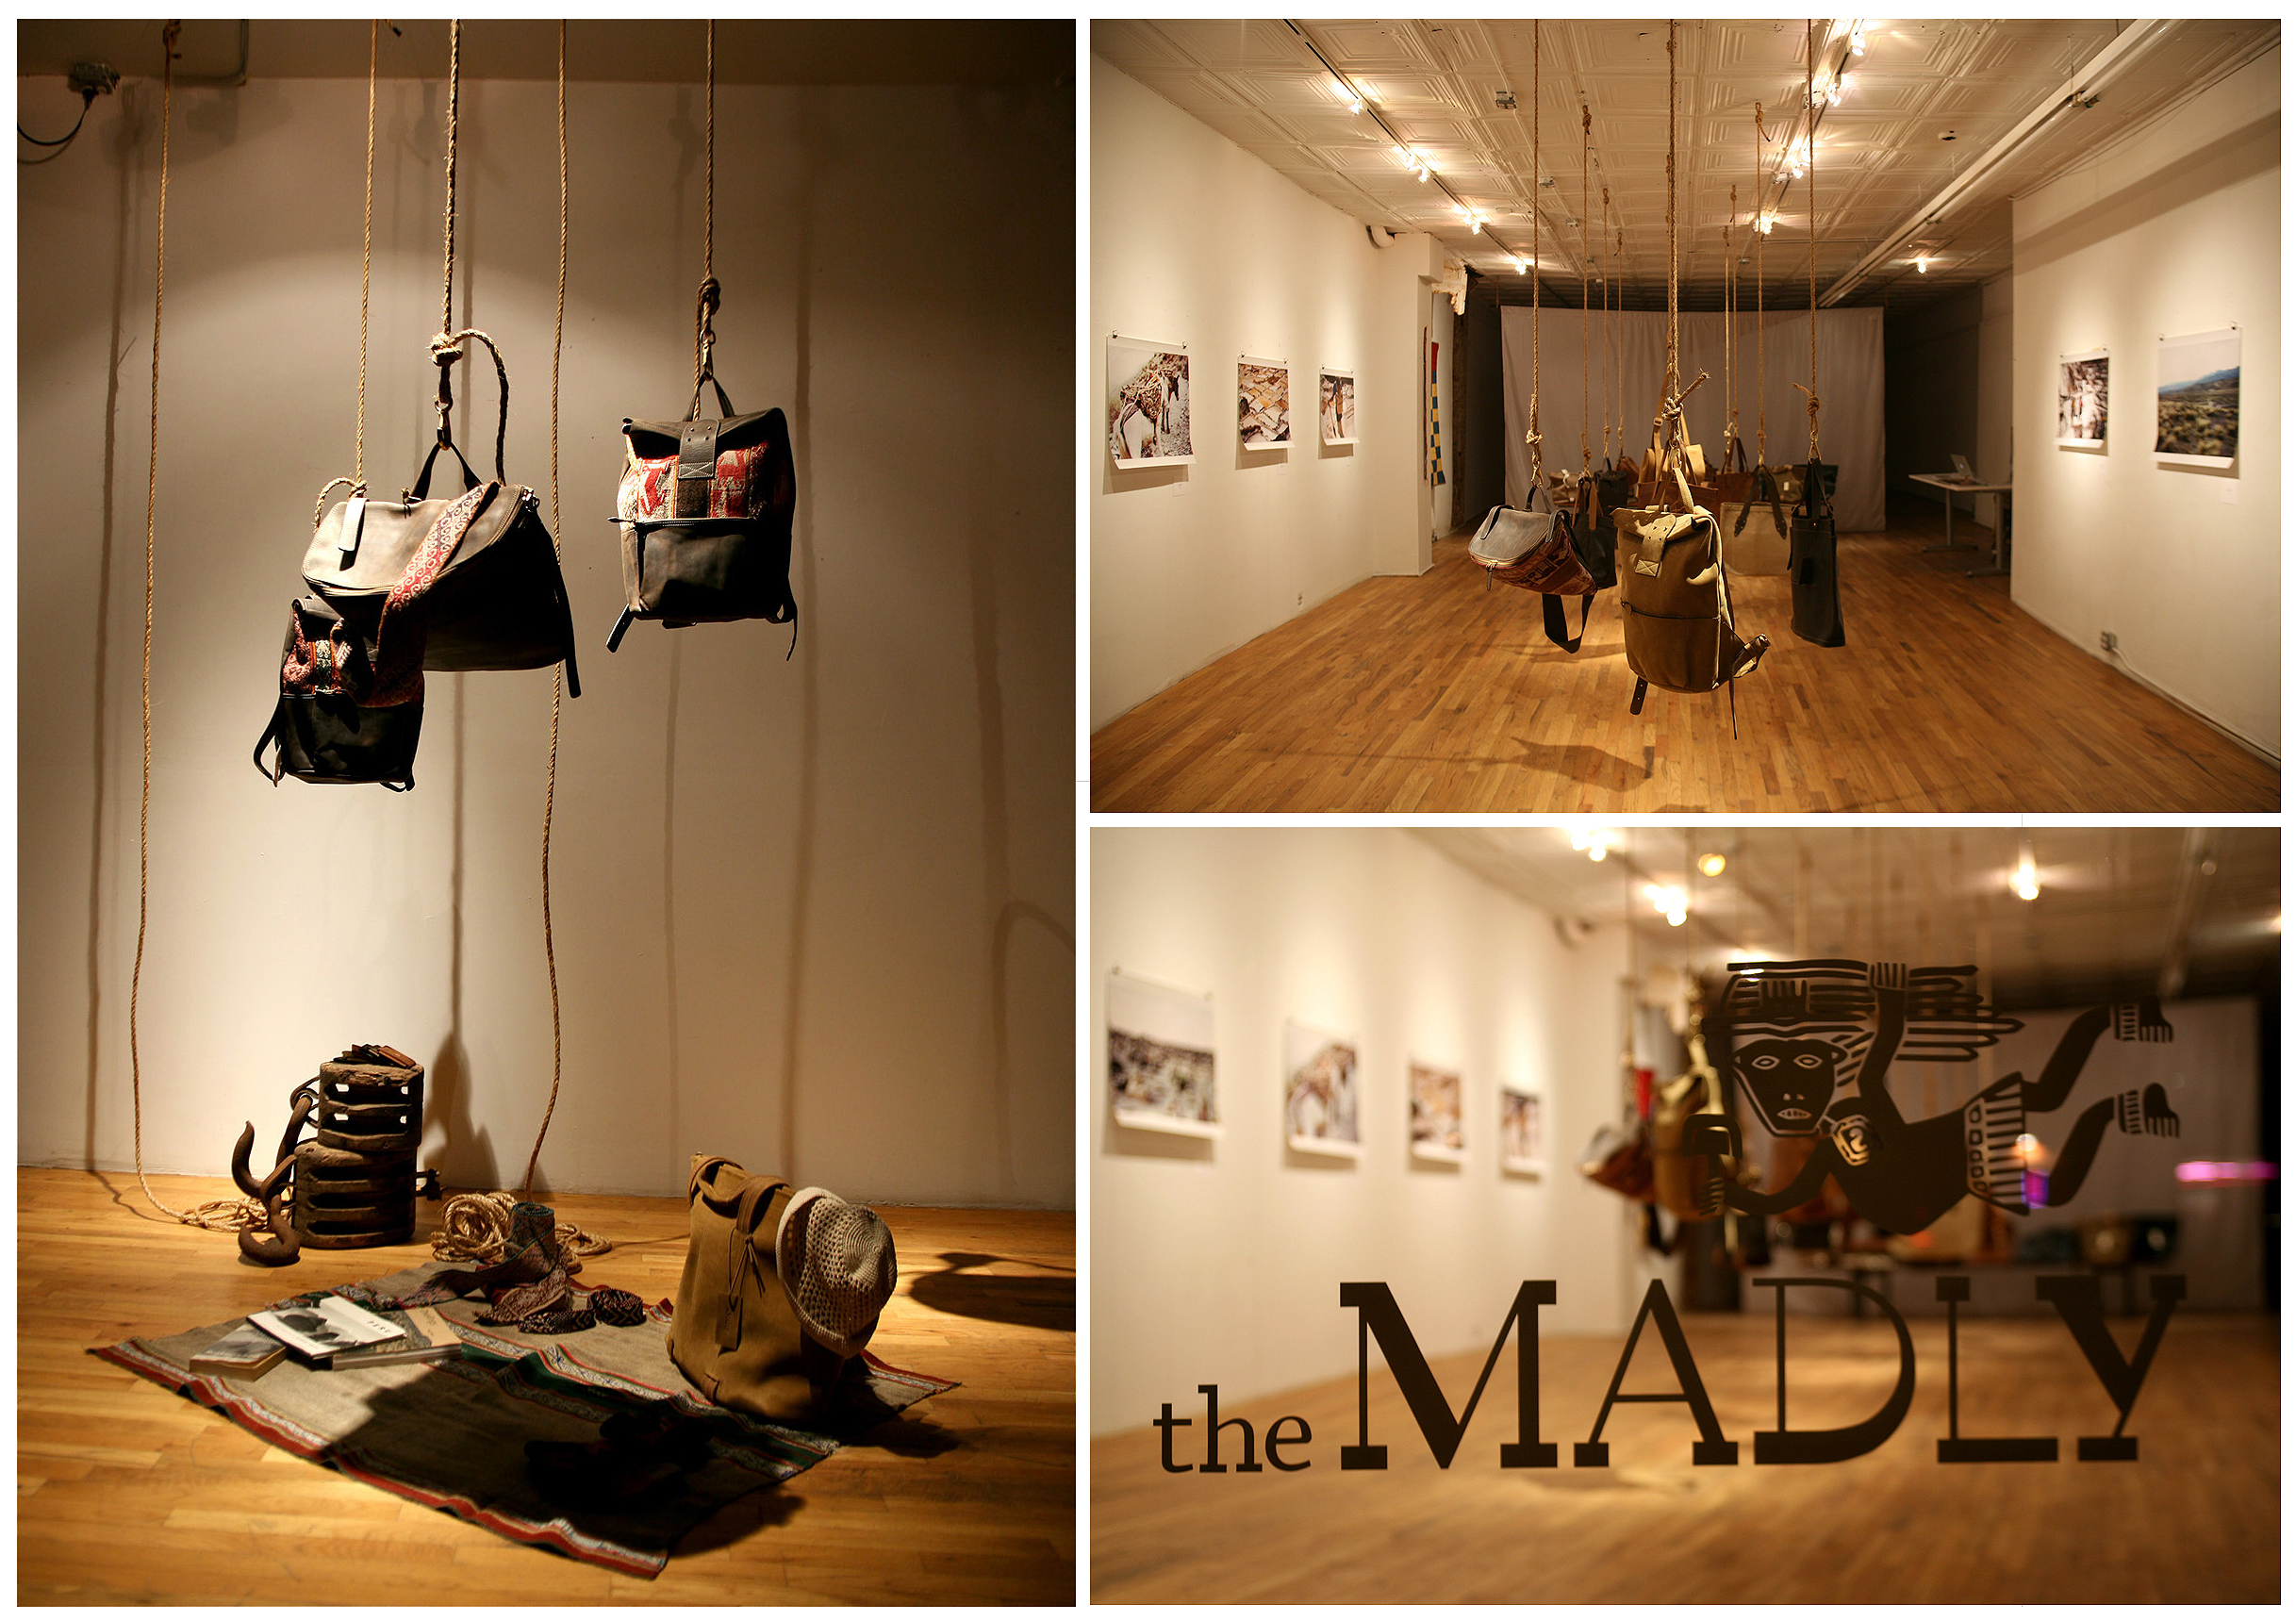 theMADLY Pop-Up Gallery Product and Space Design  |  the Bowery, NY